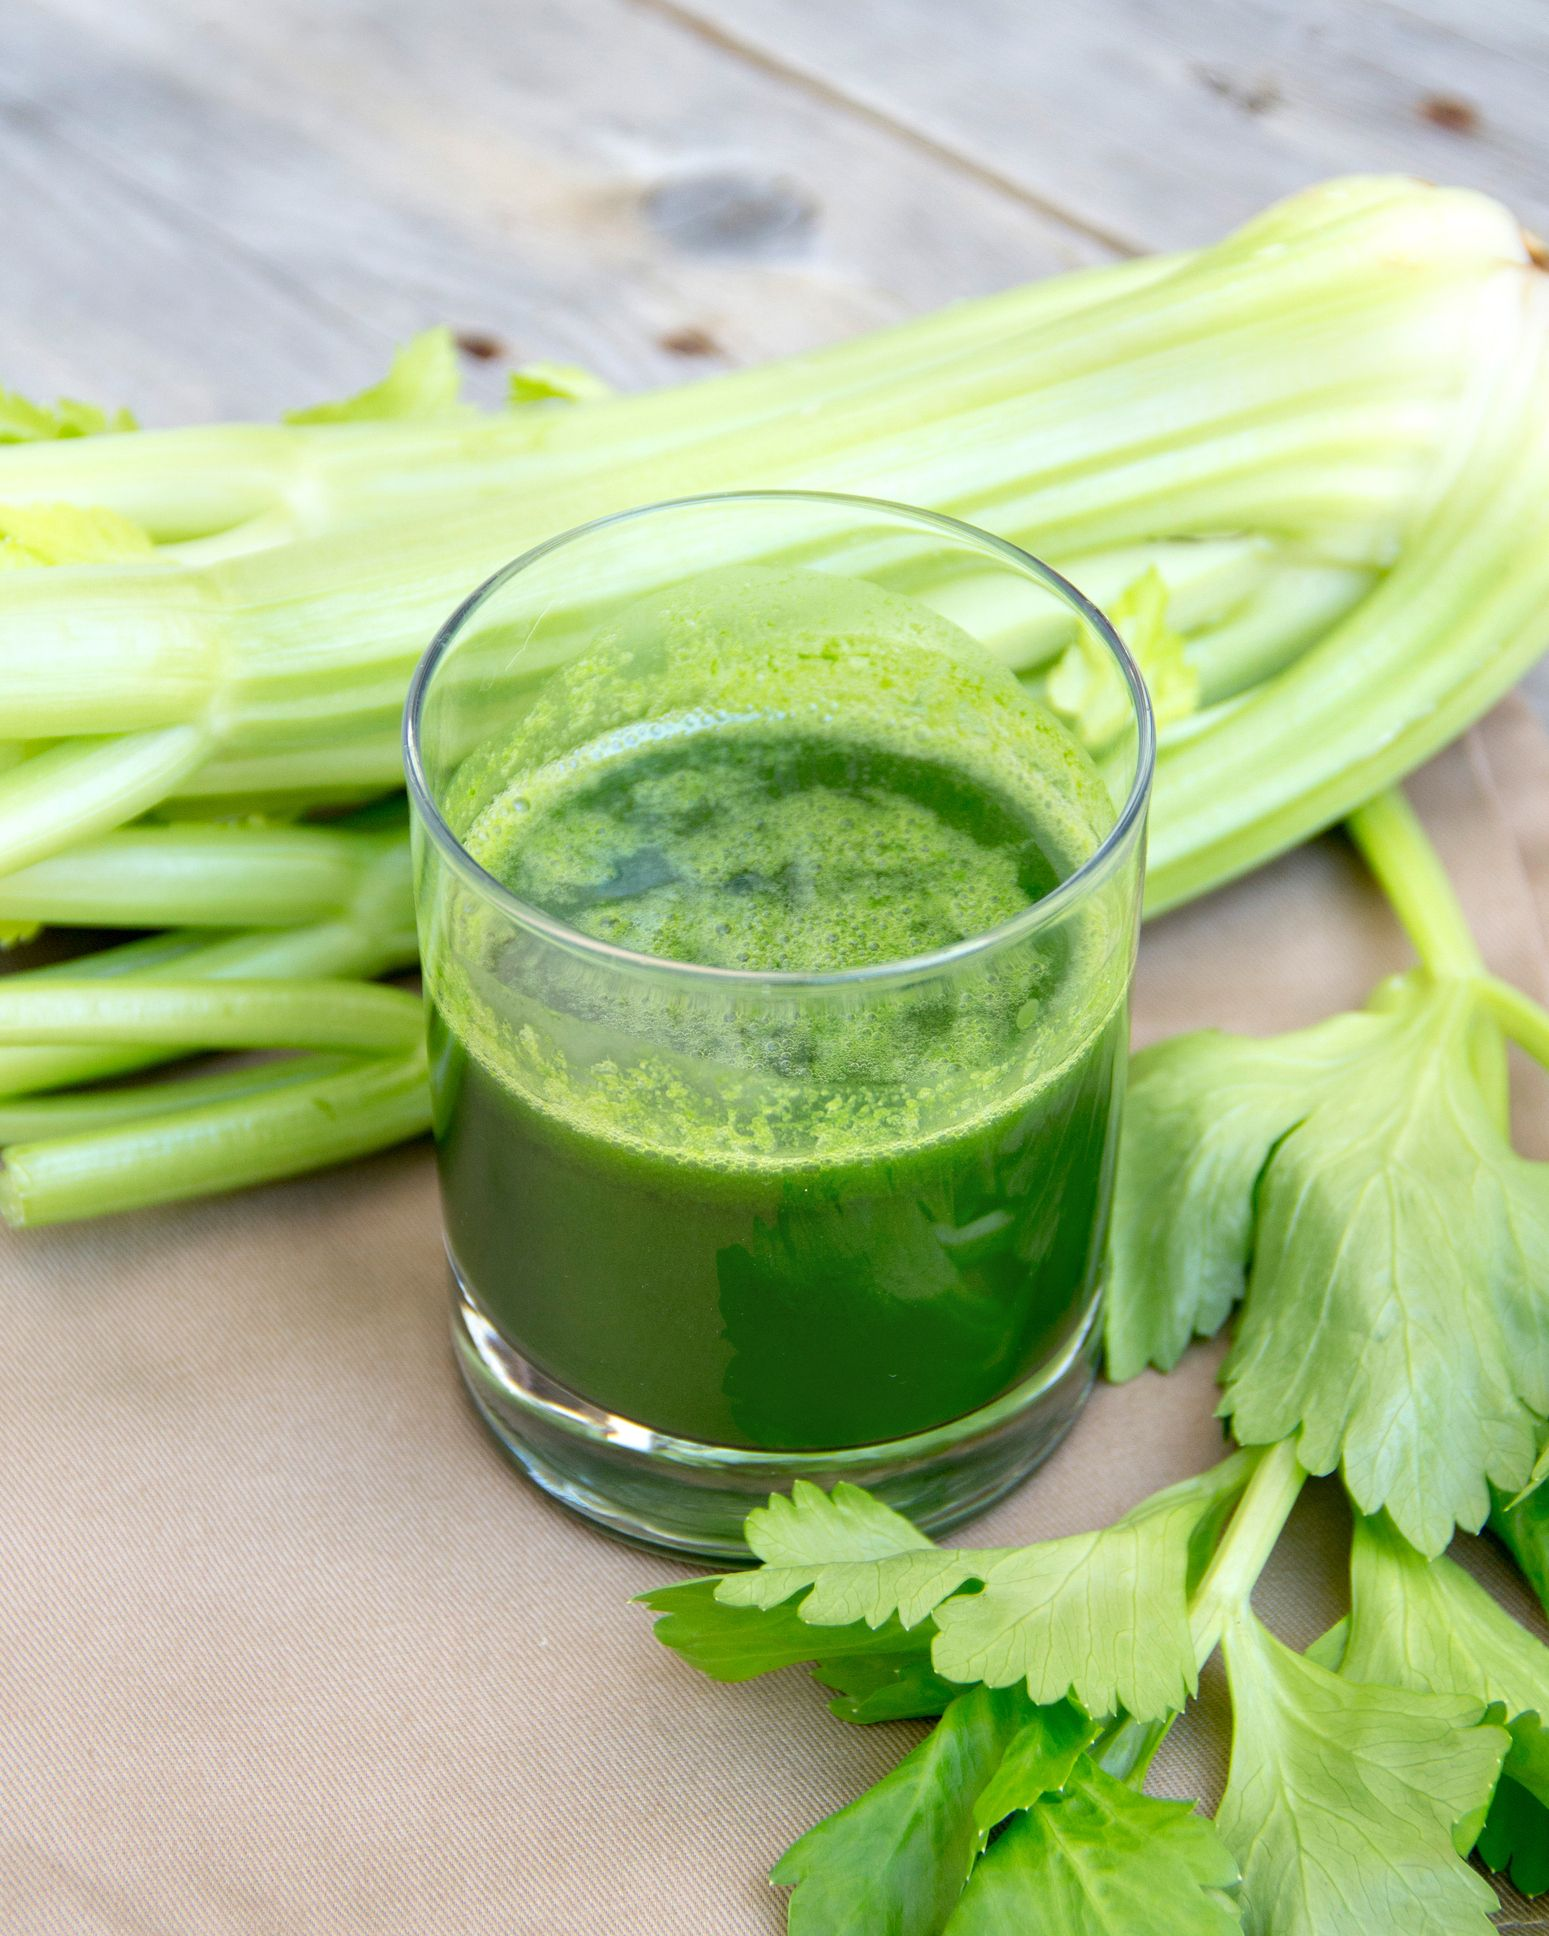 How many calories and carbs in 1 stalk of celery